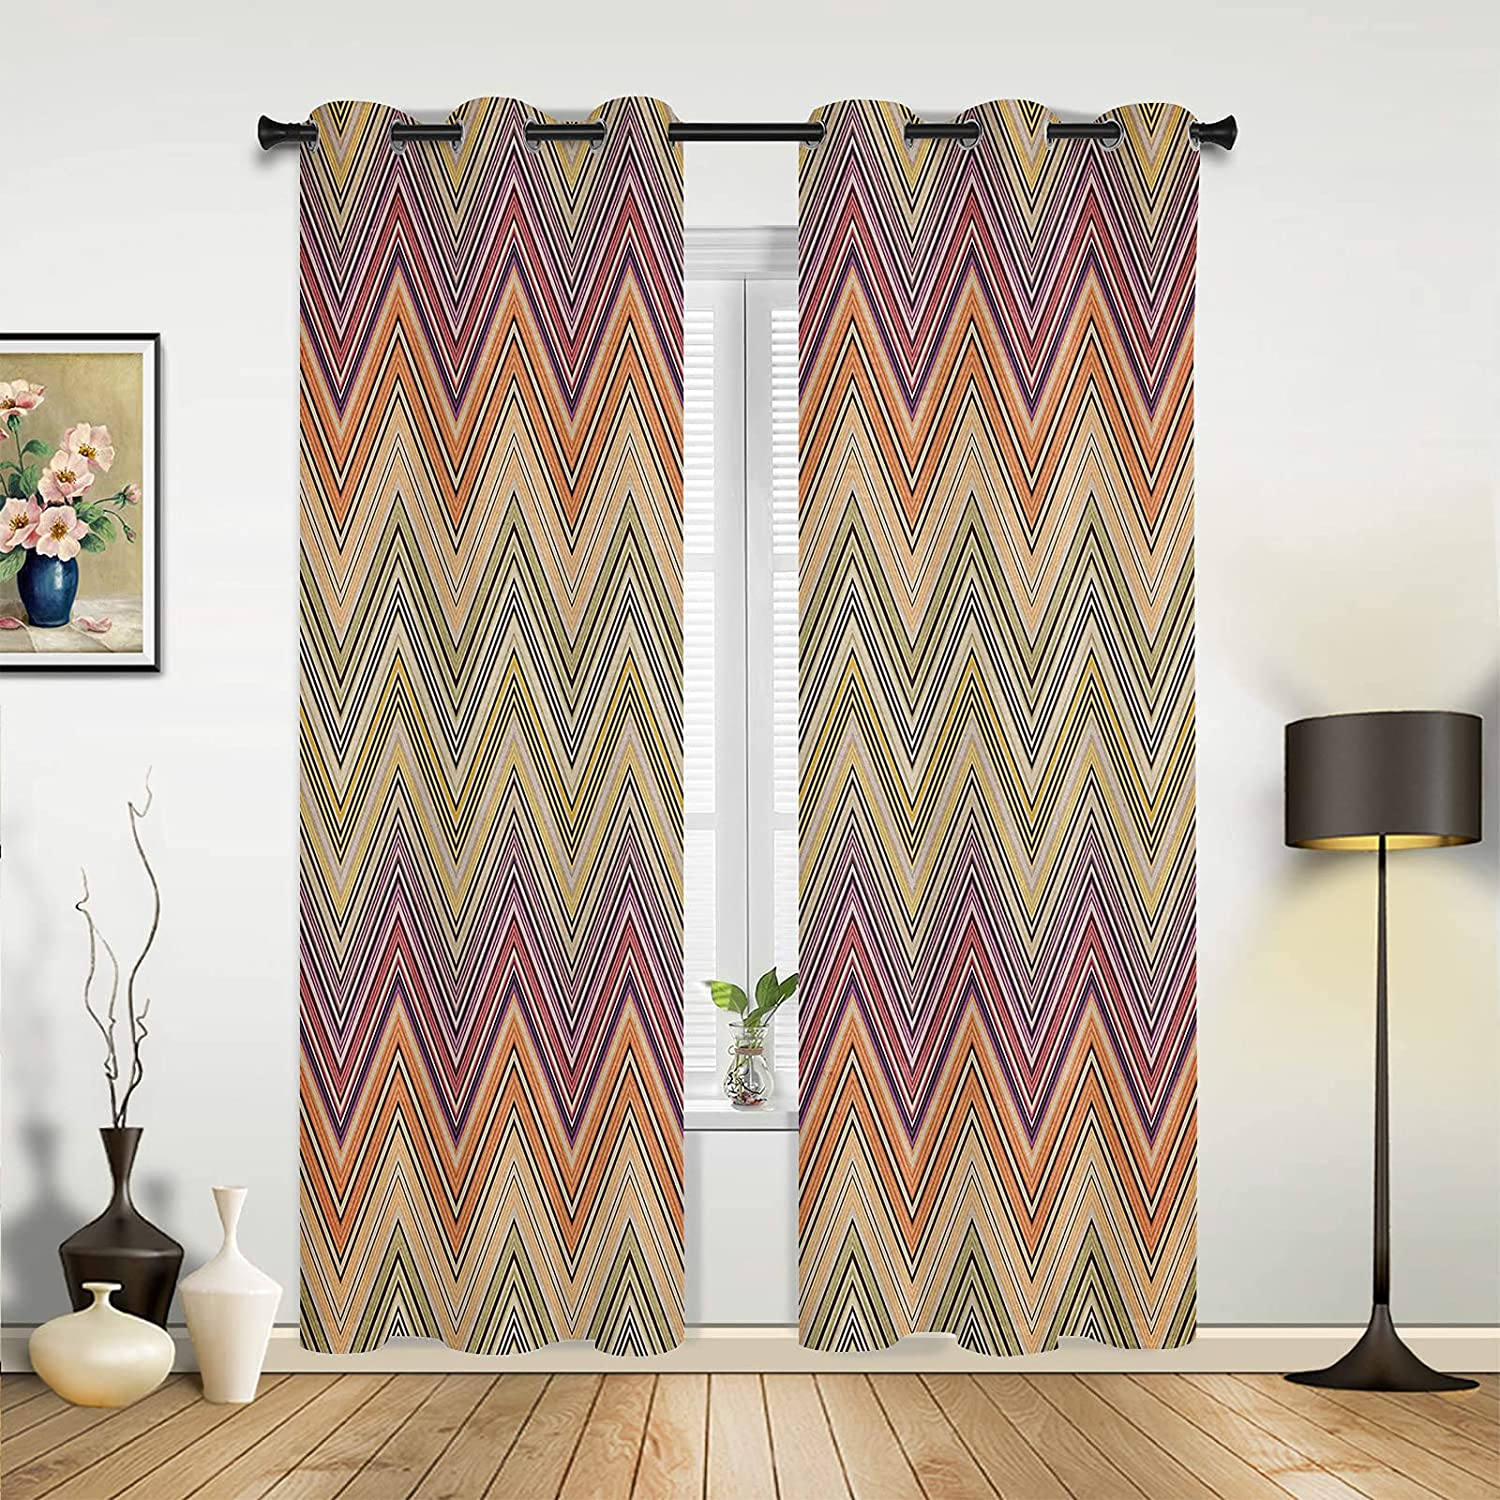 Window Sheer Max 58% OFF Curtains for Bedroom Room Retro Ethnic Style unisex Living